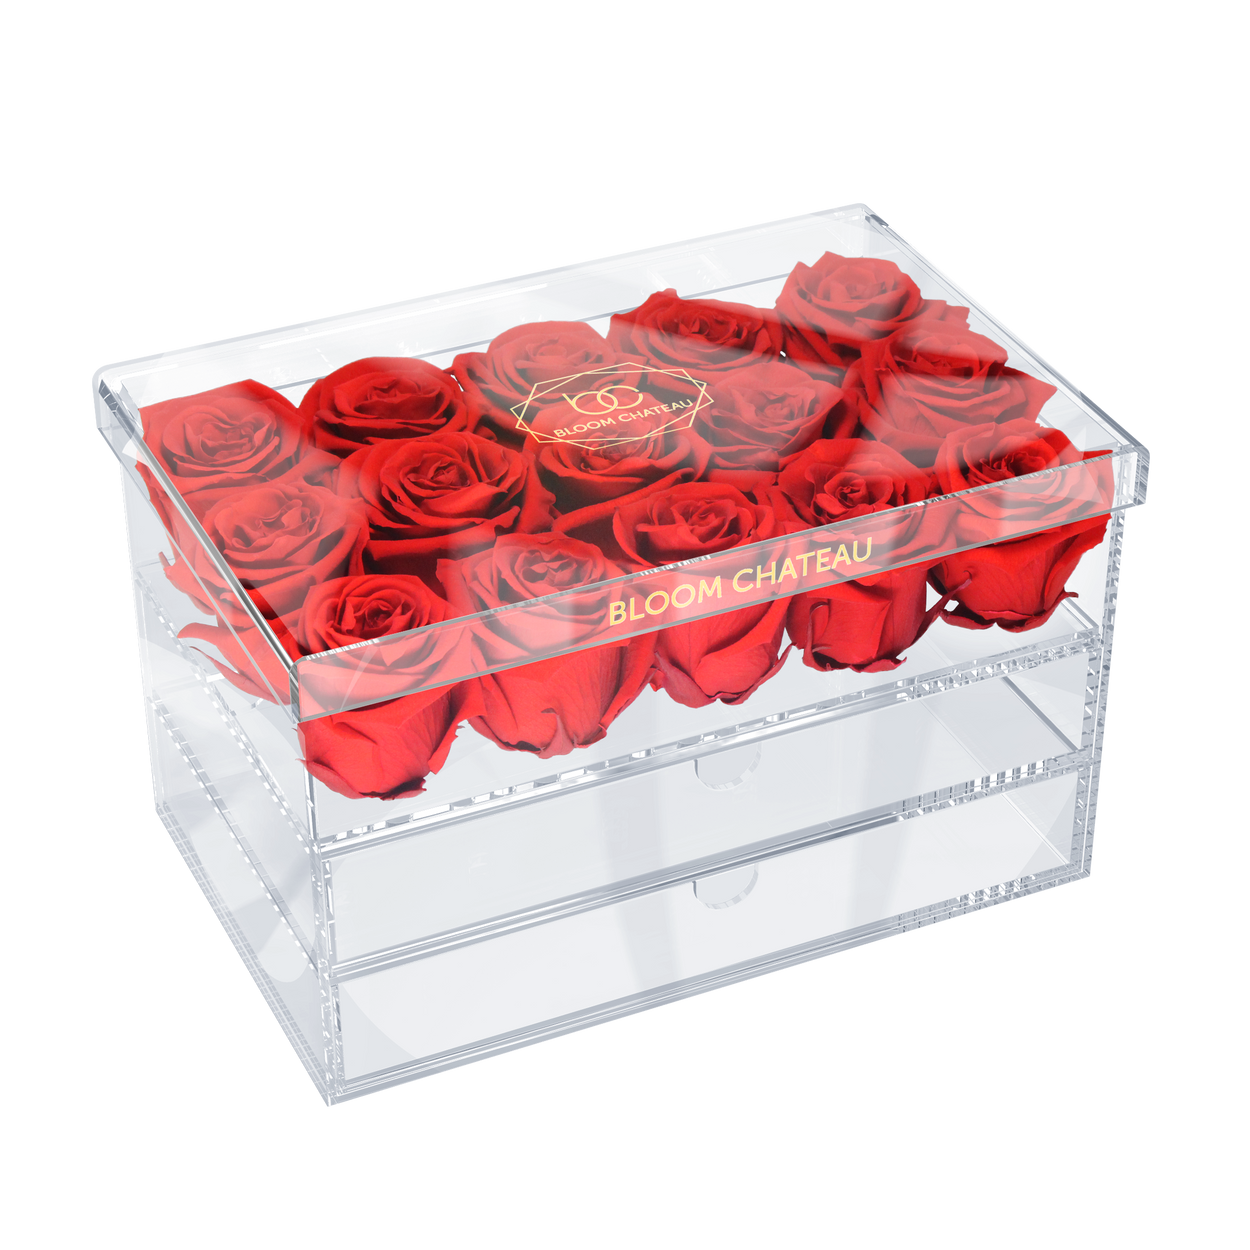 Large Crystal Box with Preserved Roses